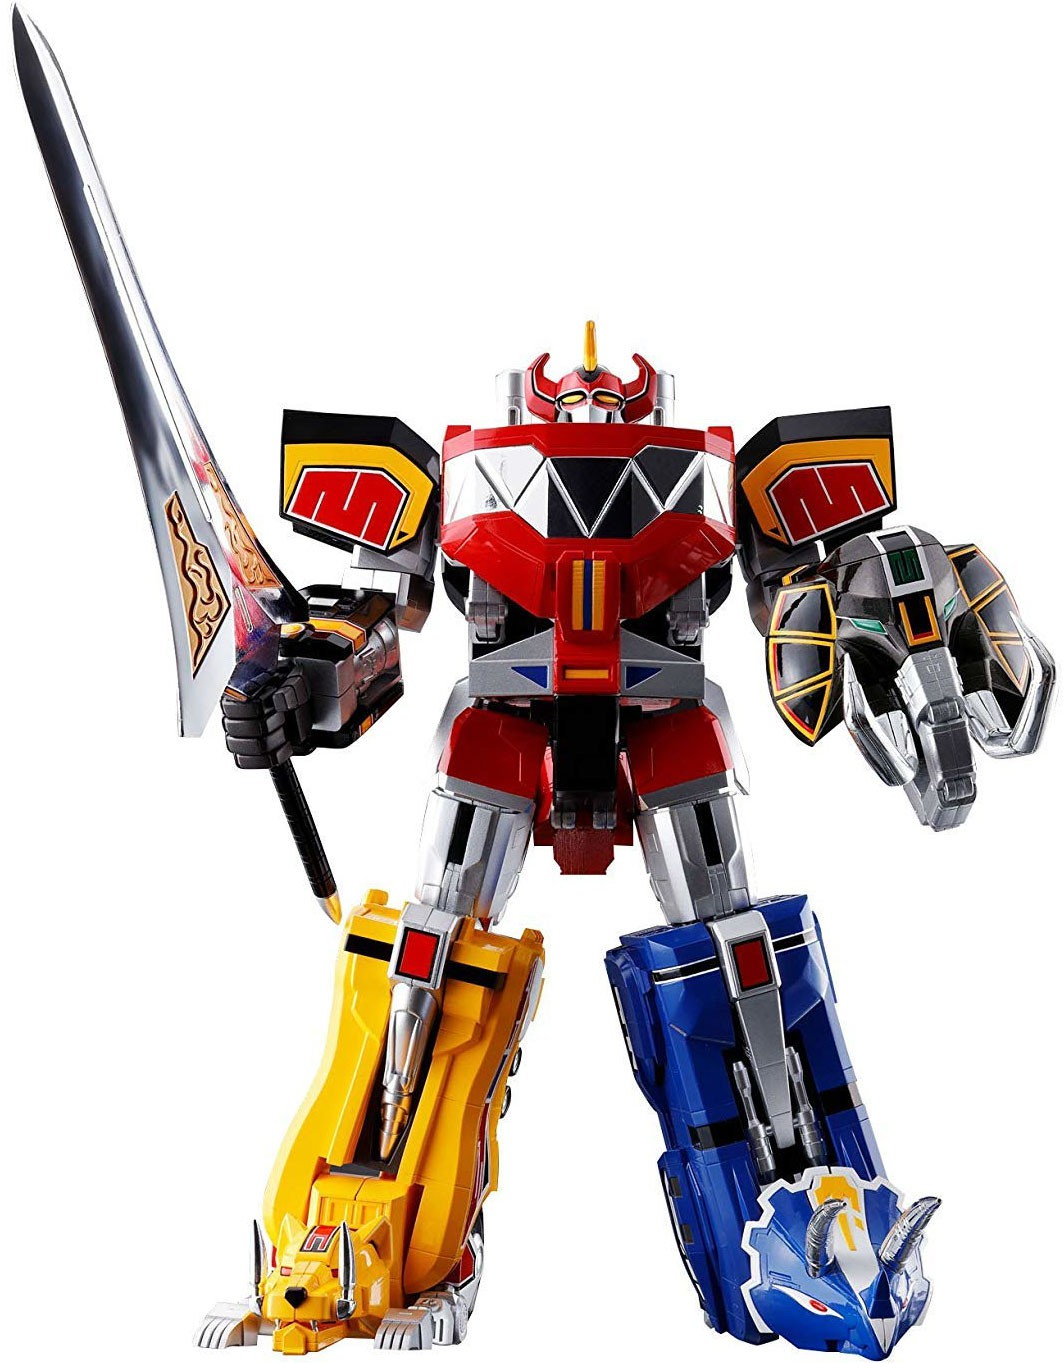 Mighty Morphin Power Rangers Soul of Chogokin GX-72 Megazord Action Figure [Color Version] by Bandai